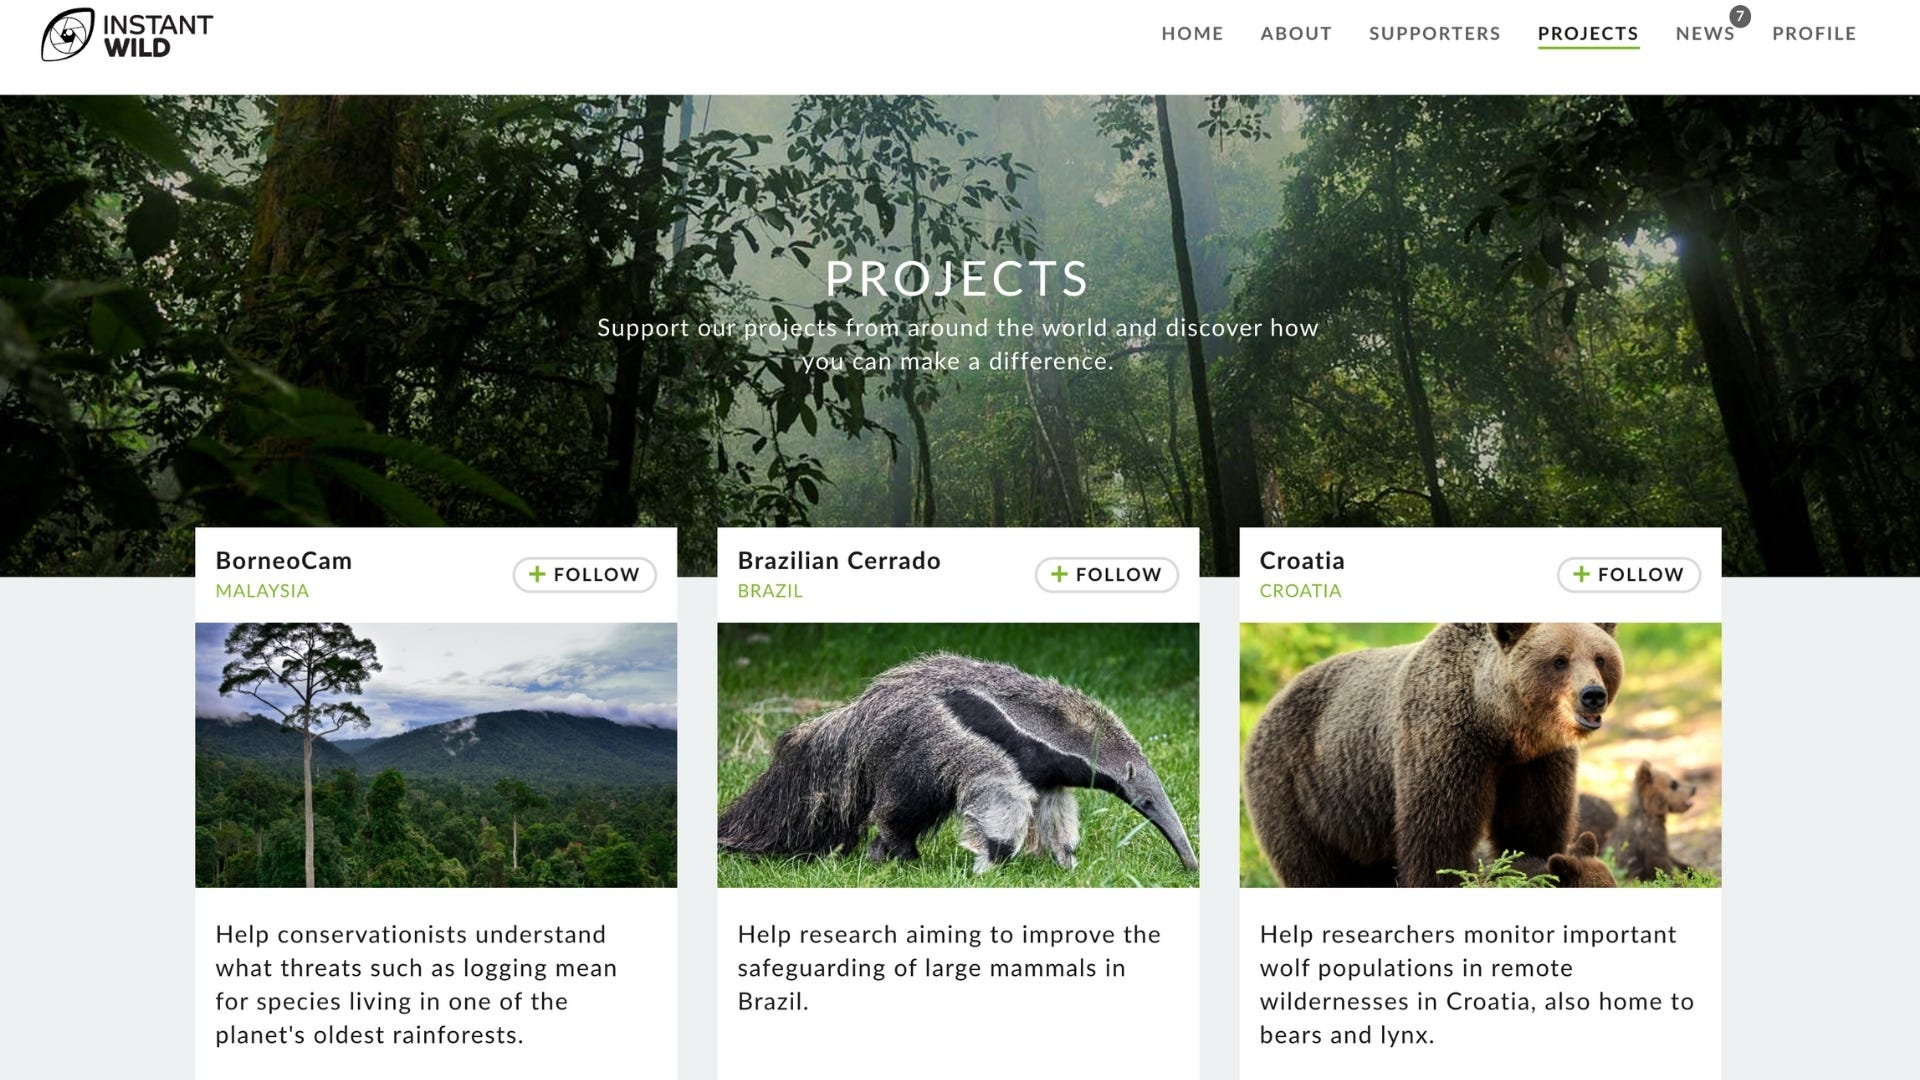 Homepage of ZSL Instant Wild website with photos of different wildlife.